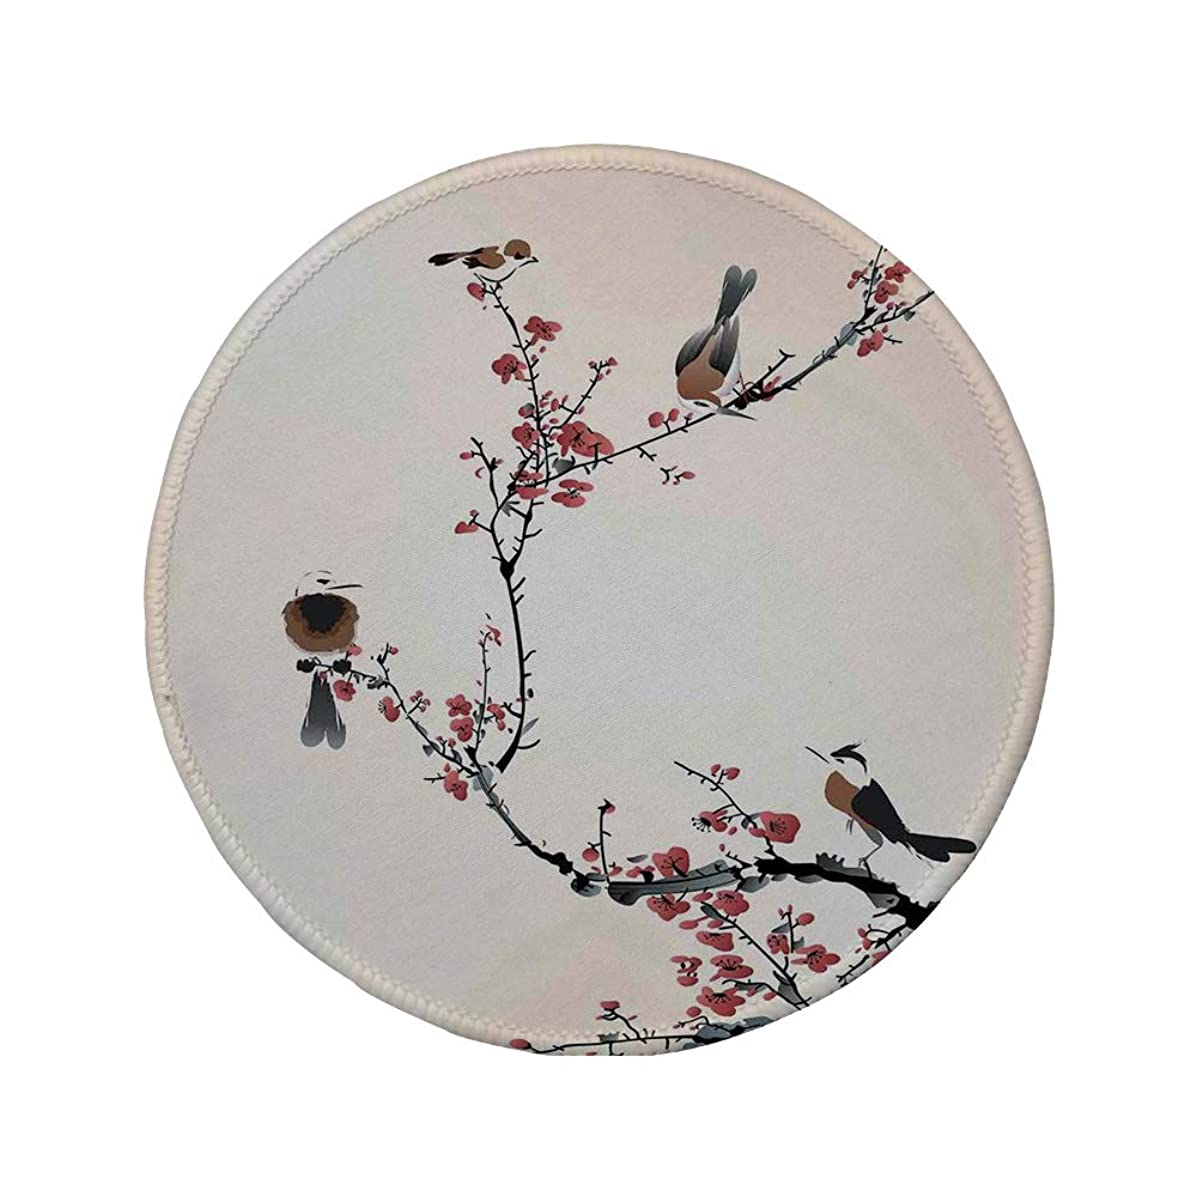 Non-Slip Rubber Round Mouse Pad,House Decor,Stylized Blooming Japanese Cherry Tree Watercolor Painting Effect Artistic Design Print,Pink Brown,11.8